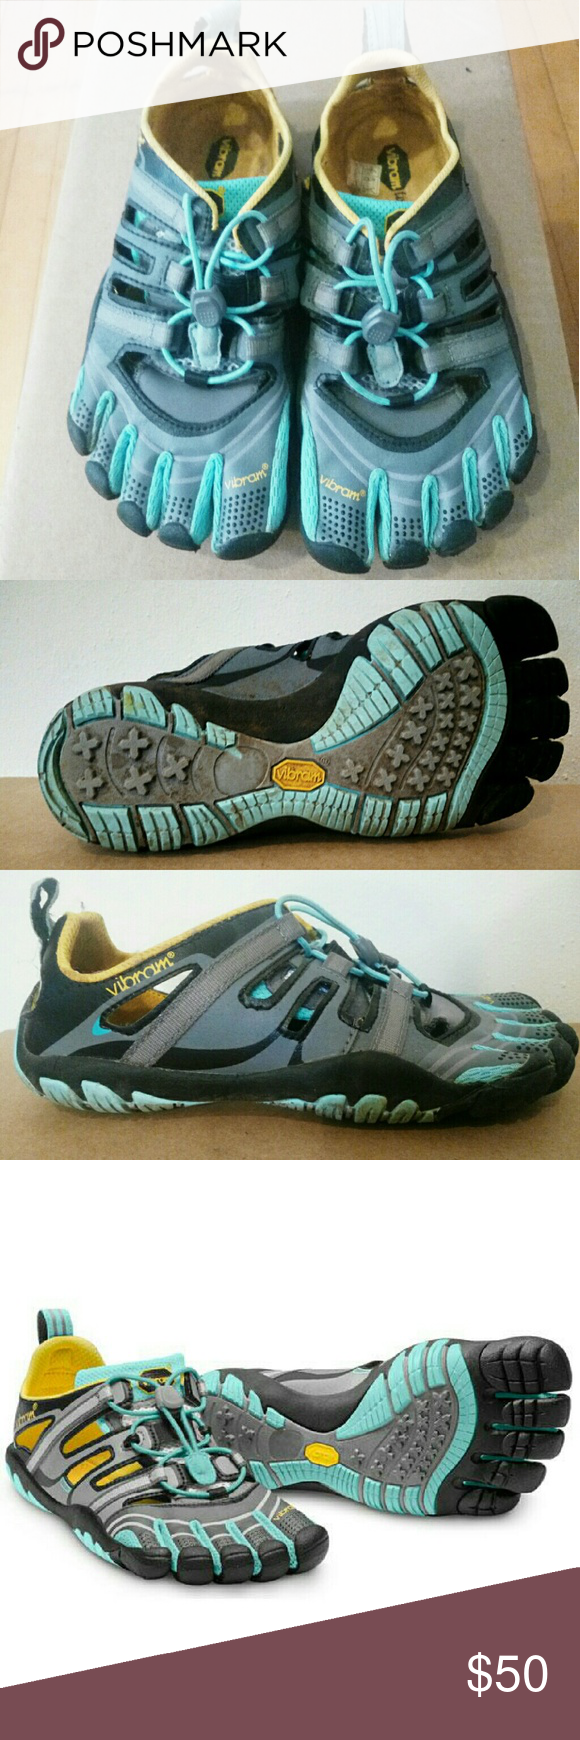 pretty nice dc5be dc496 Vibram FiveFingers Treksport Sandals - Vibram FiveFingers Treksport shoes,  size 37 - Ice blue and